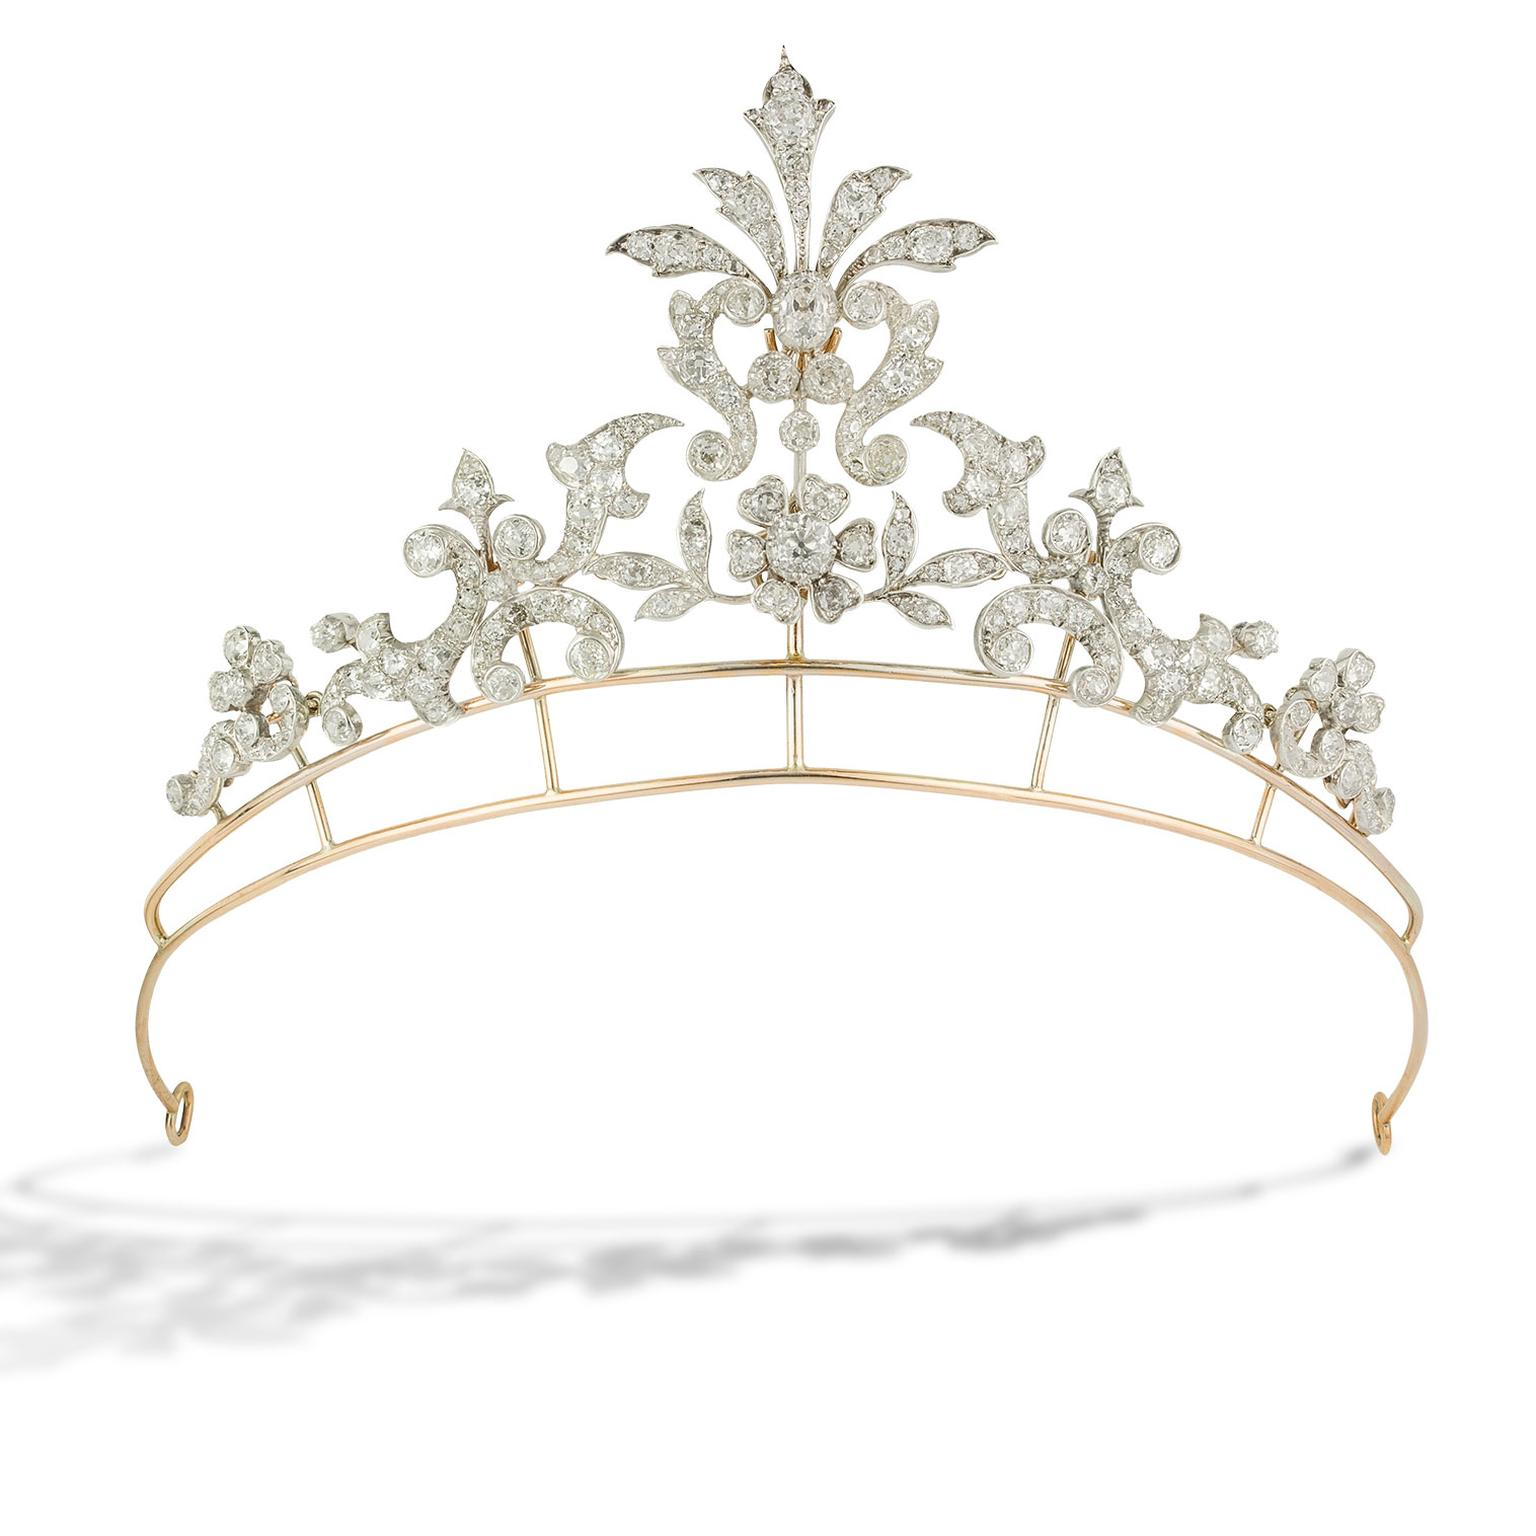 Bentley & Skinner Belle Epoque antique tiara from 1900